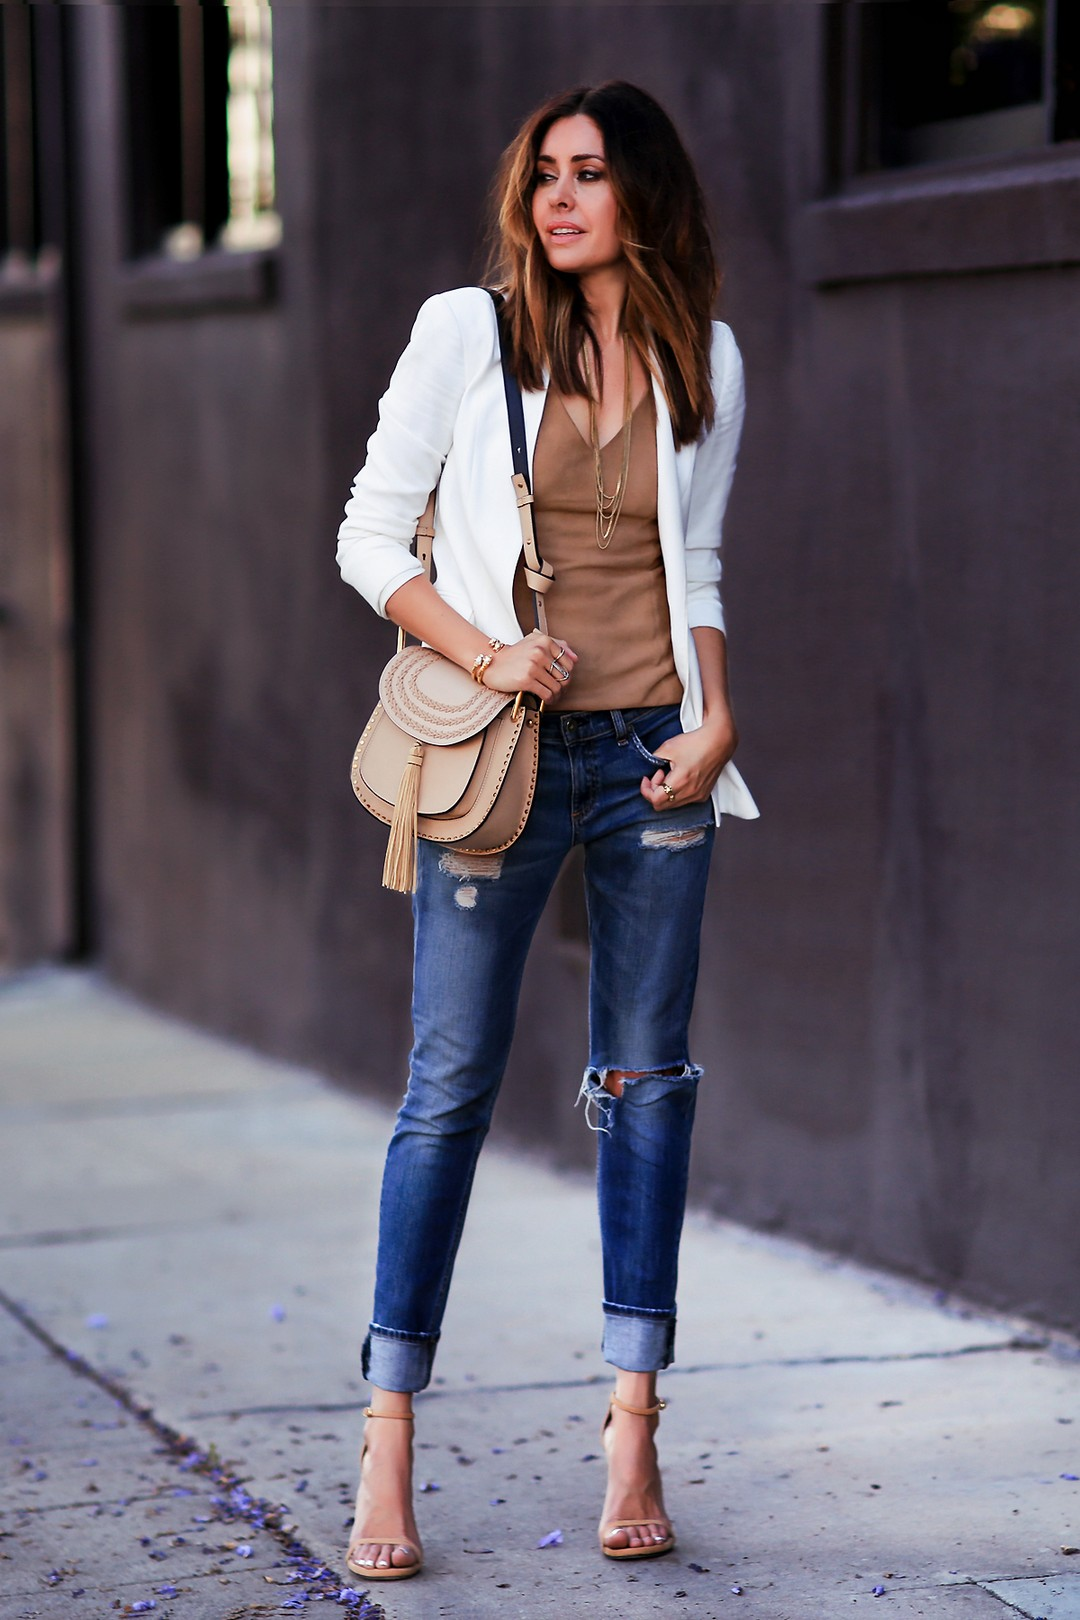 Boyfriend jeans are a must have for a comfy fit and an ultra relaxed vibe. Erica Hoida looks super cool and ready for the day in these upturned boyfriend jeans, worn with a simple V neck top and a white blazer. Jacket: Theory, Top: Bailey 44, Jeans: Rag & Bone, Shoes: Stuart Weitzman, Bag: Chloe.